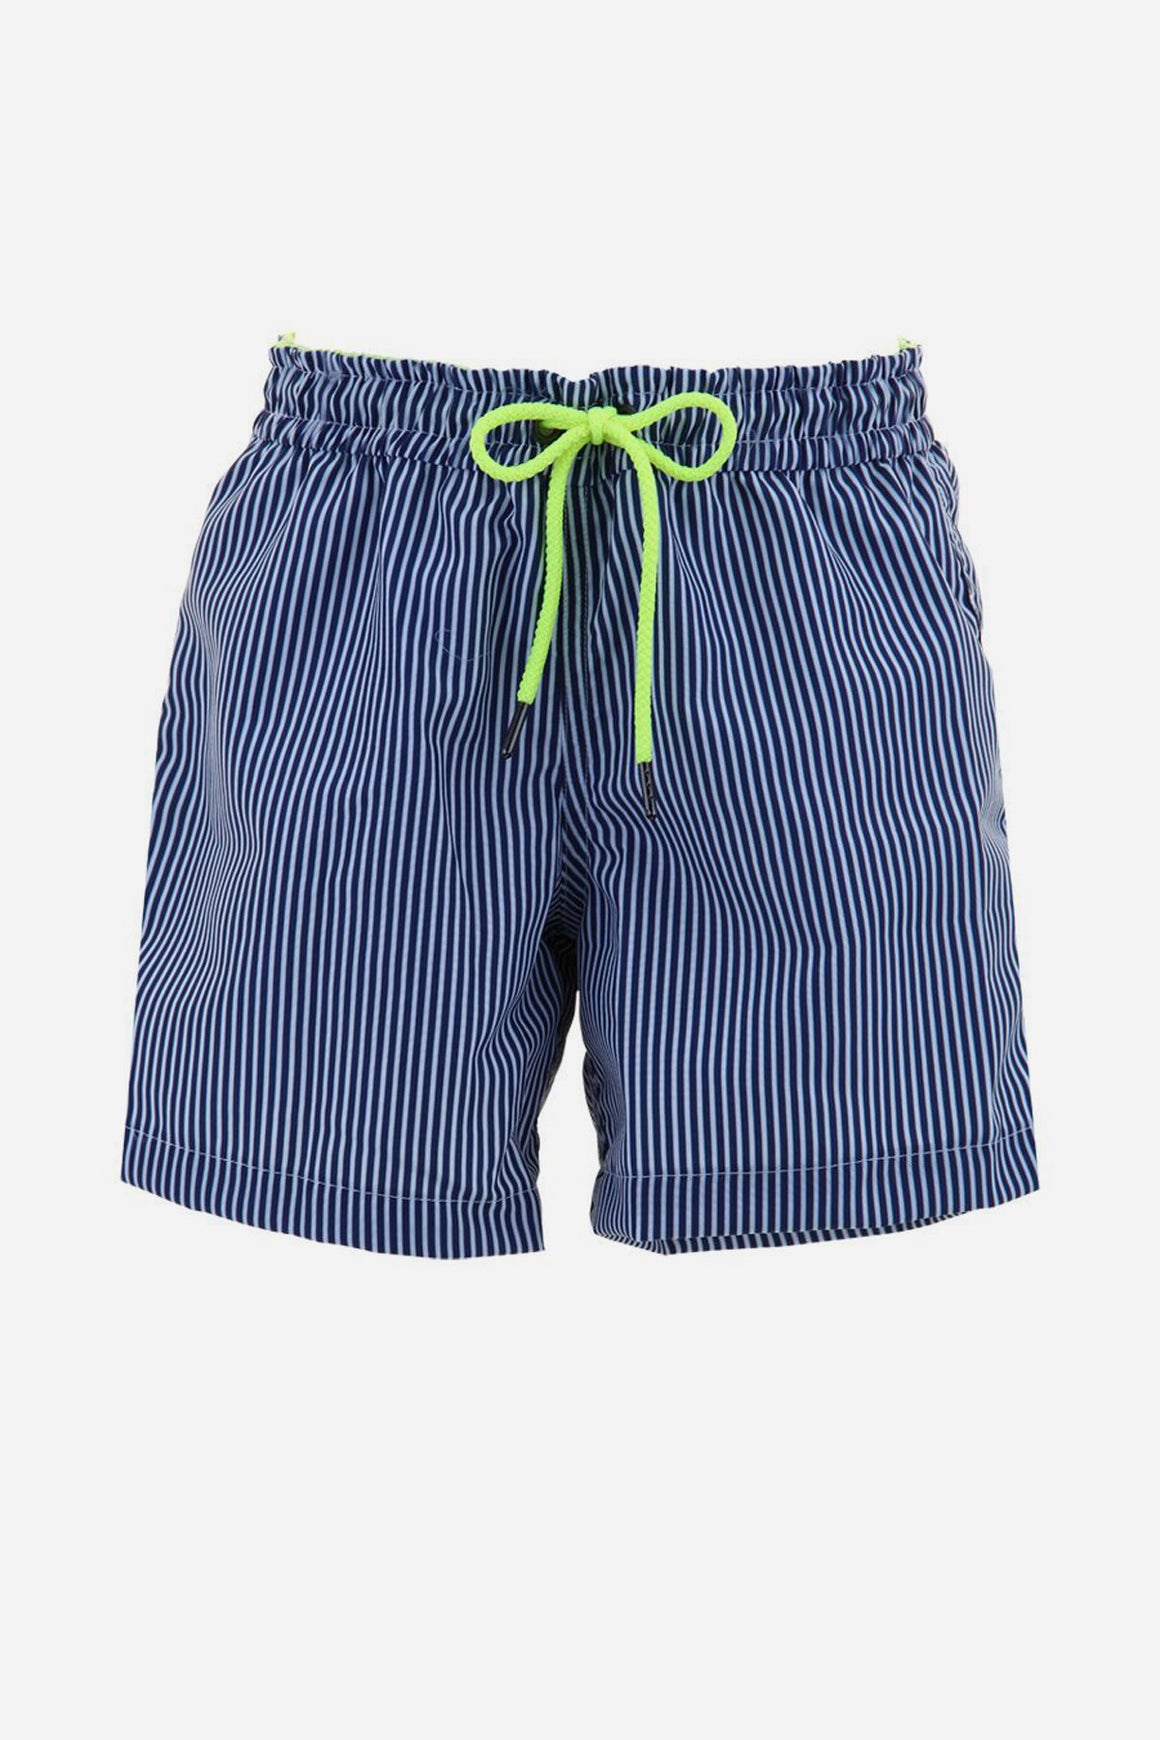 Sunuva Navy Stripe Swim Short